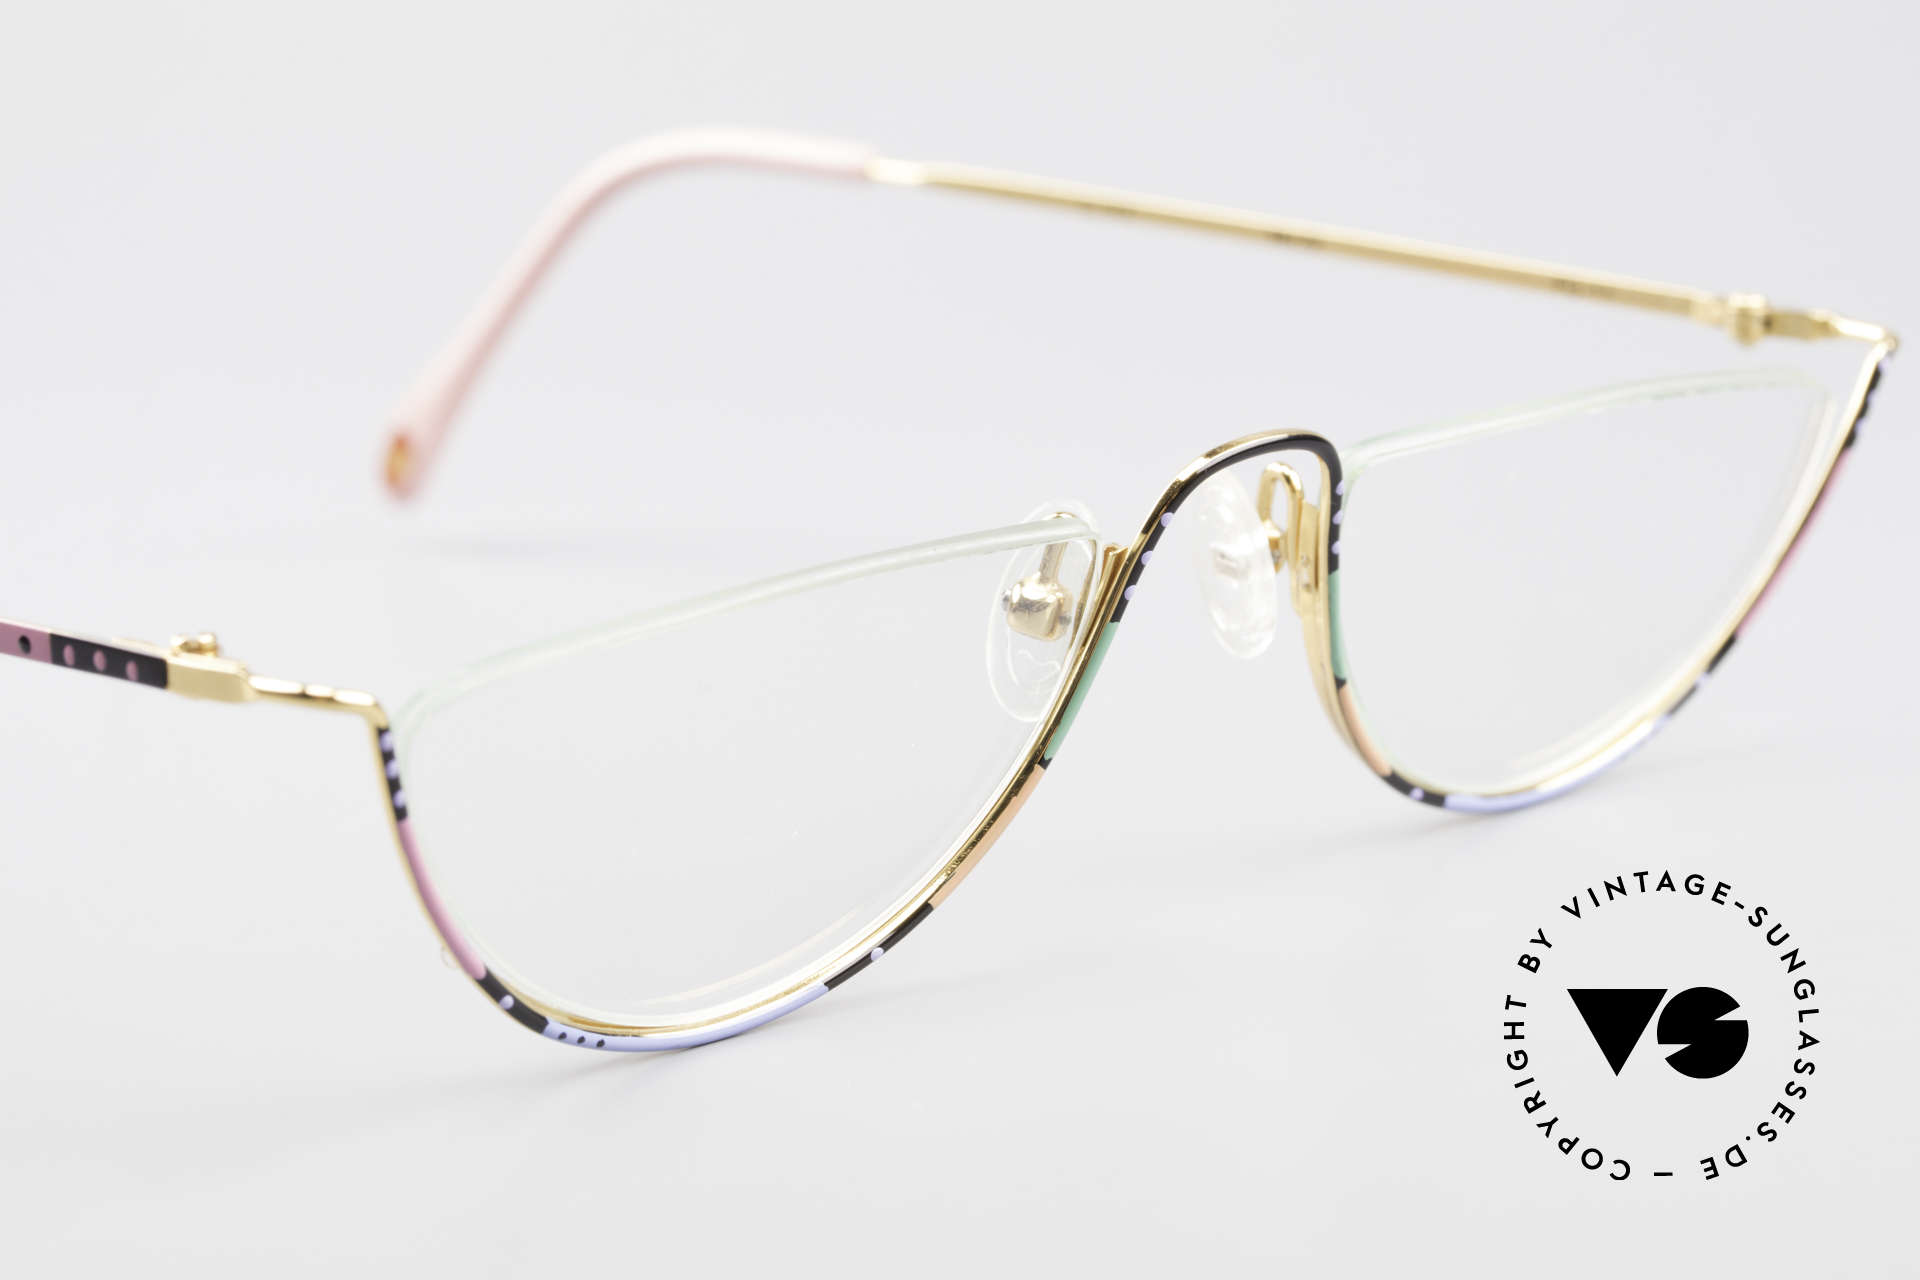 Casanova FC11 Colorful Reading Eyeglasses, limited-lot production (rare, extravagant & sumptuous), Made for Women